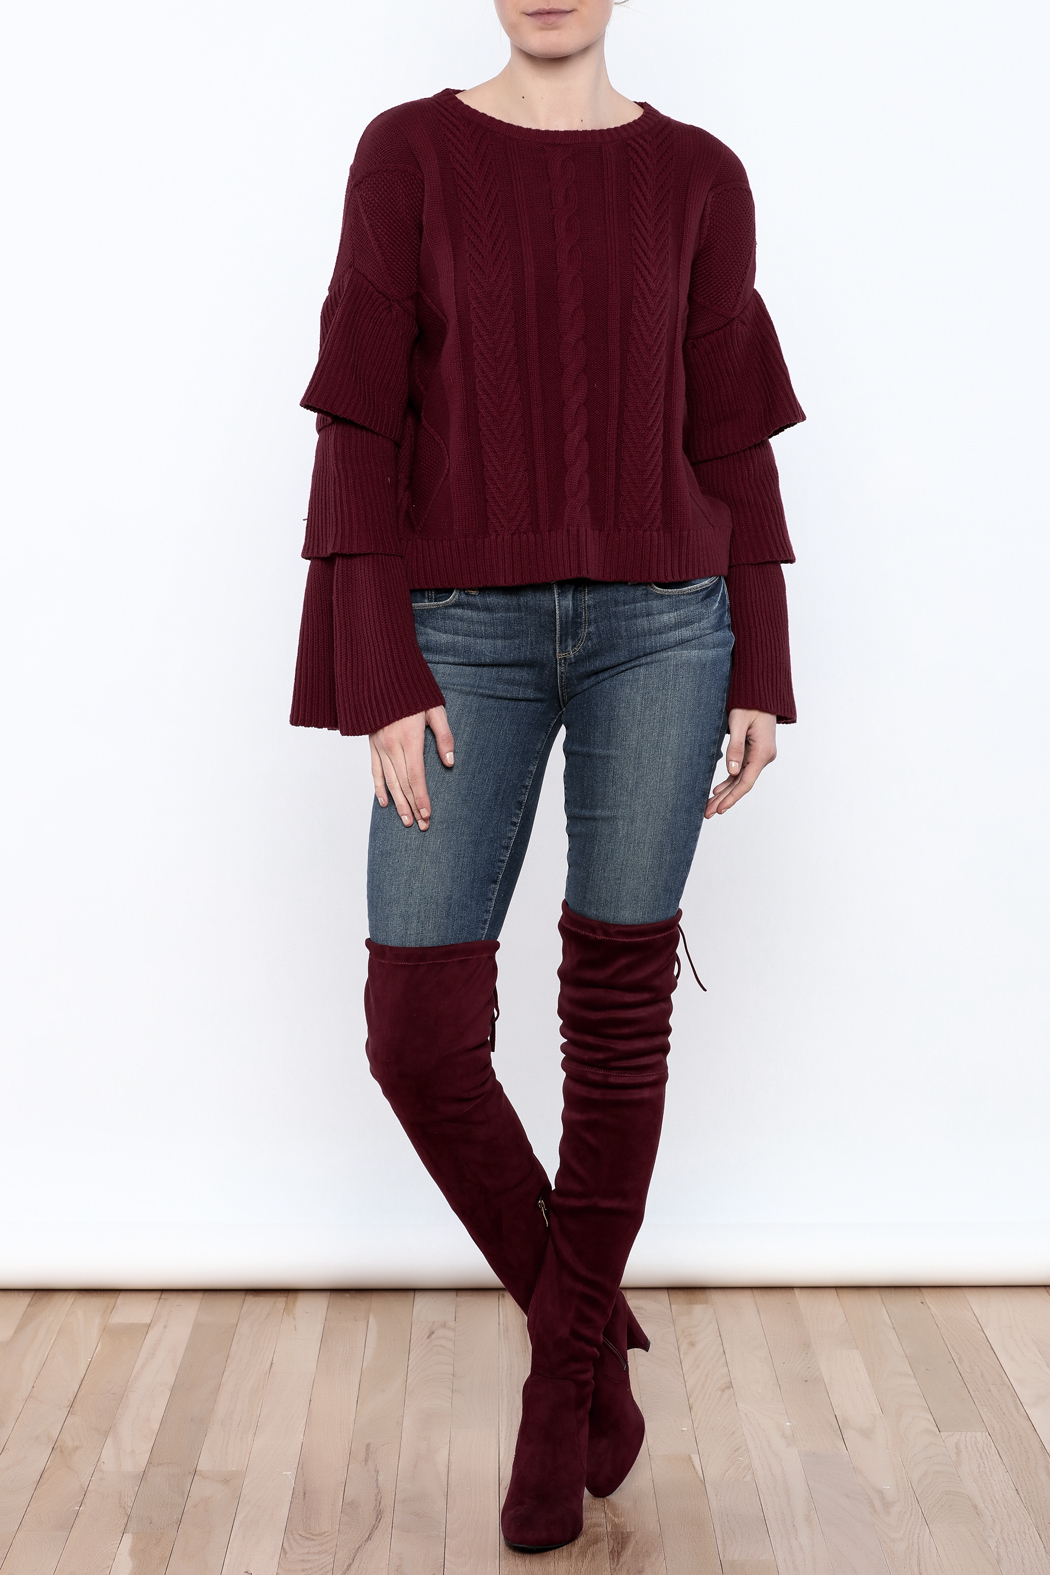 6bccbae2b7c Endless Rose Ruffled Sleeve Sweater from Michigan by Lifted Boutique ...